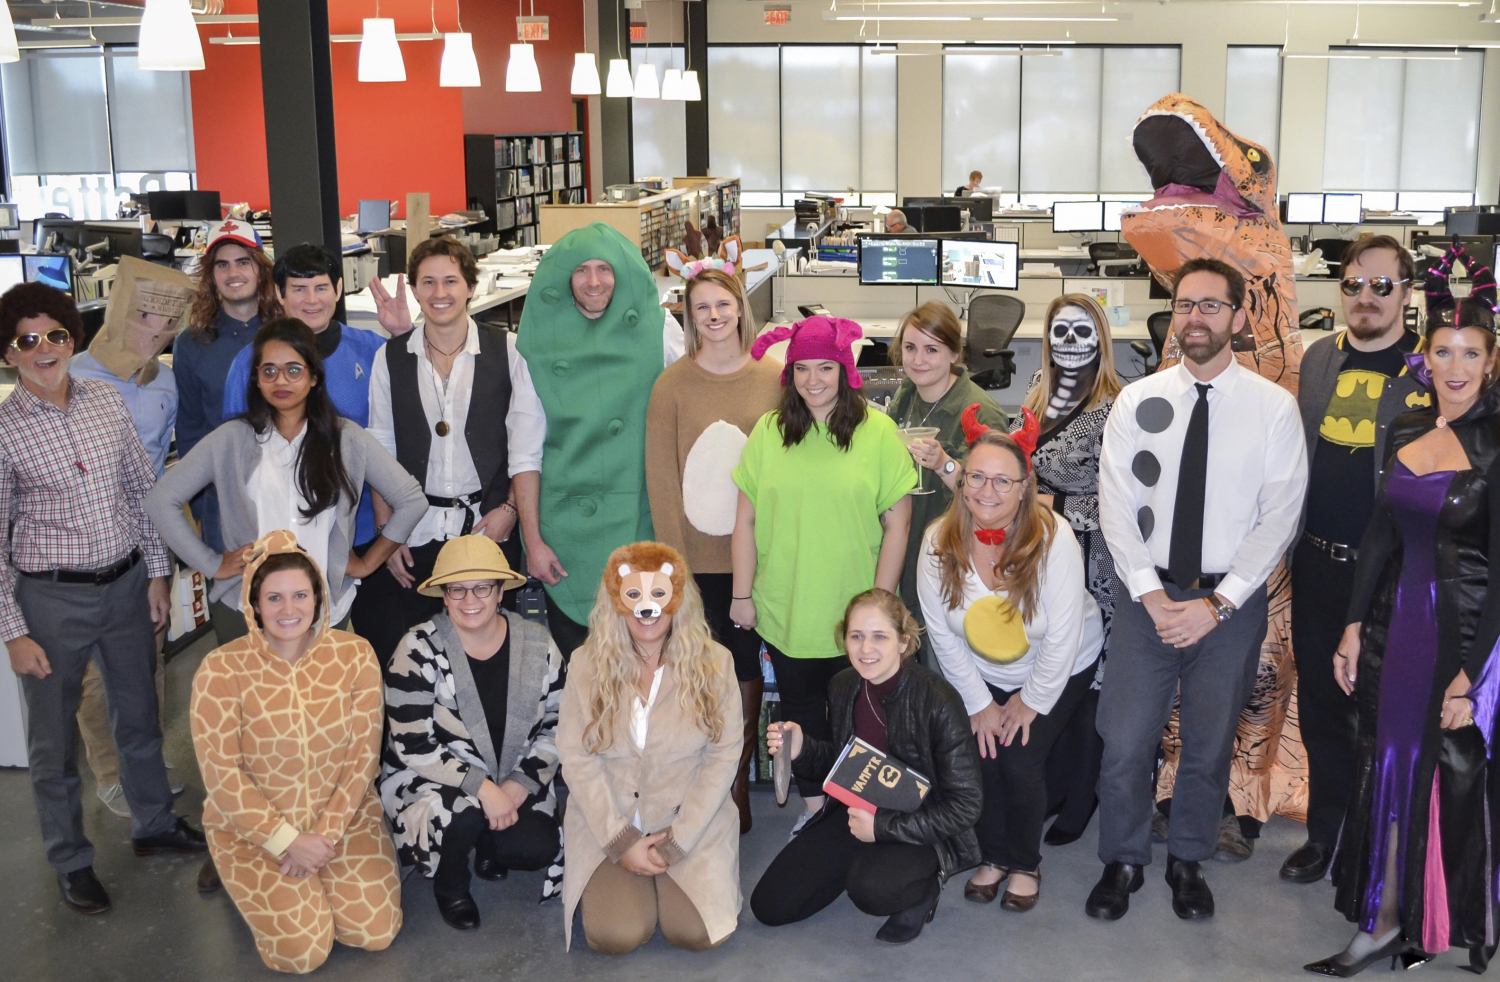 Group staff photo in costumes from Halloween 2018